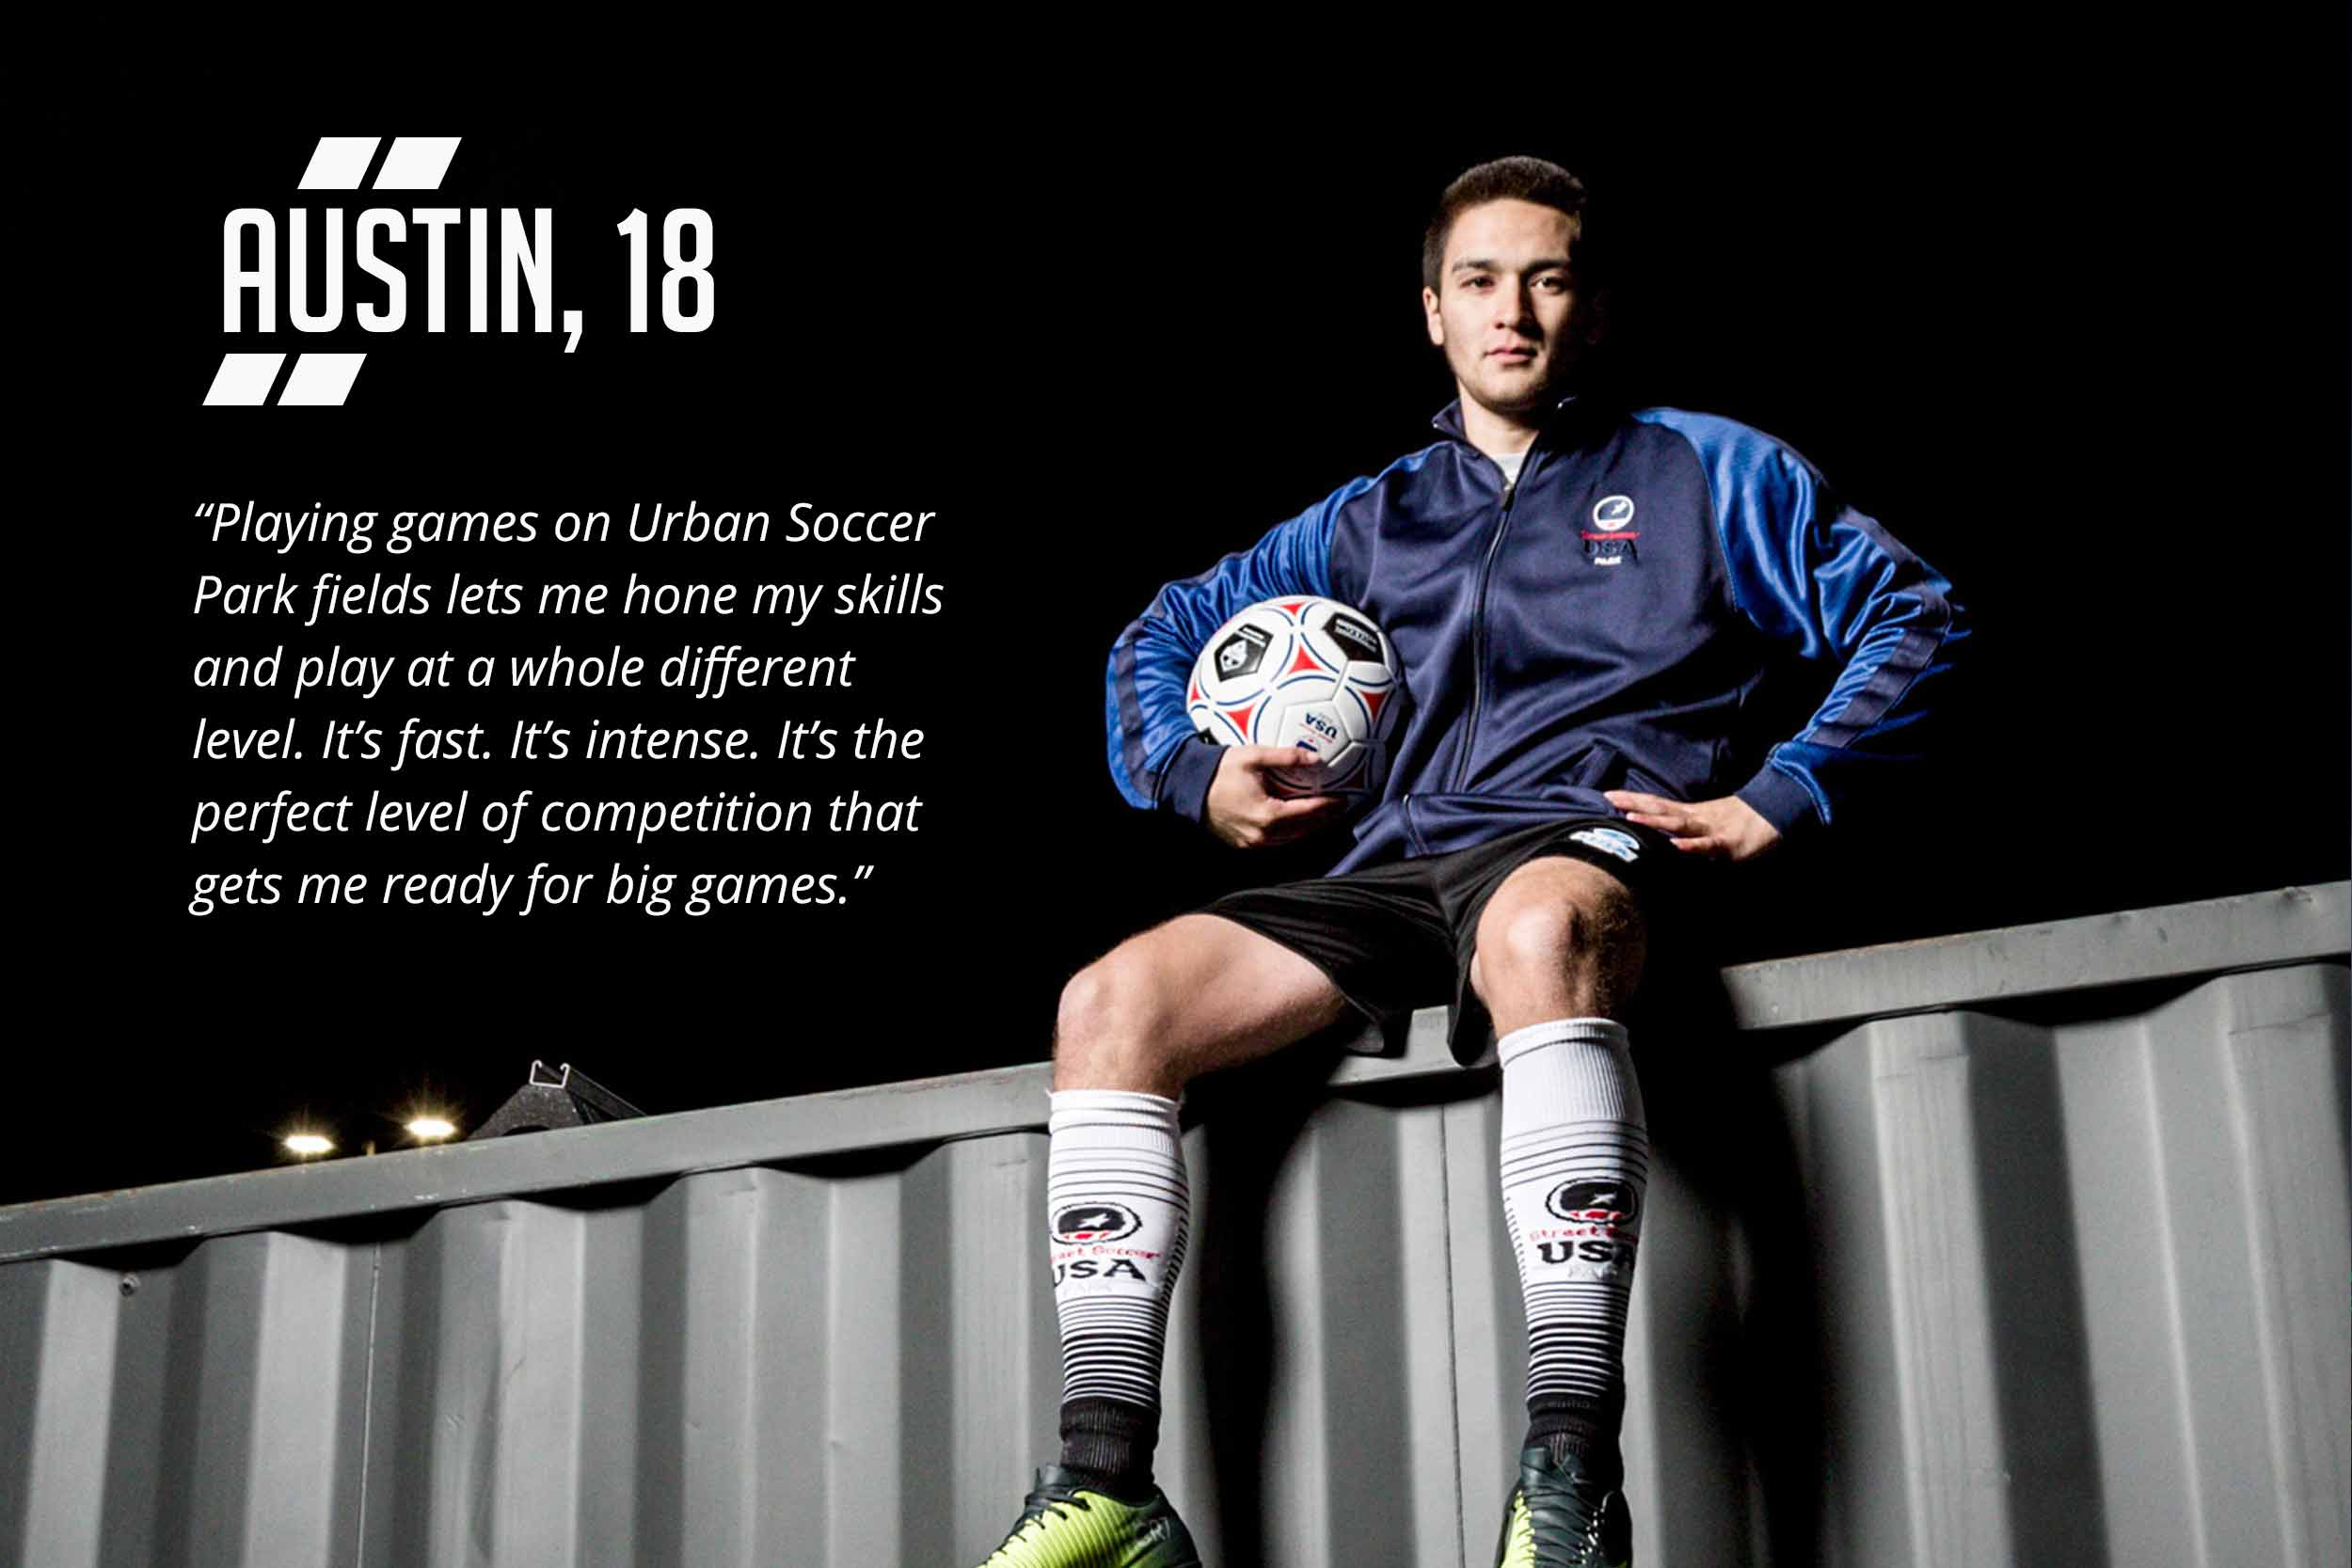 Soccer player sitting on top of a shipping container at night.